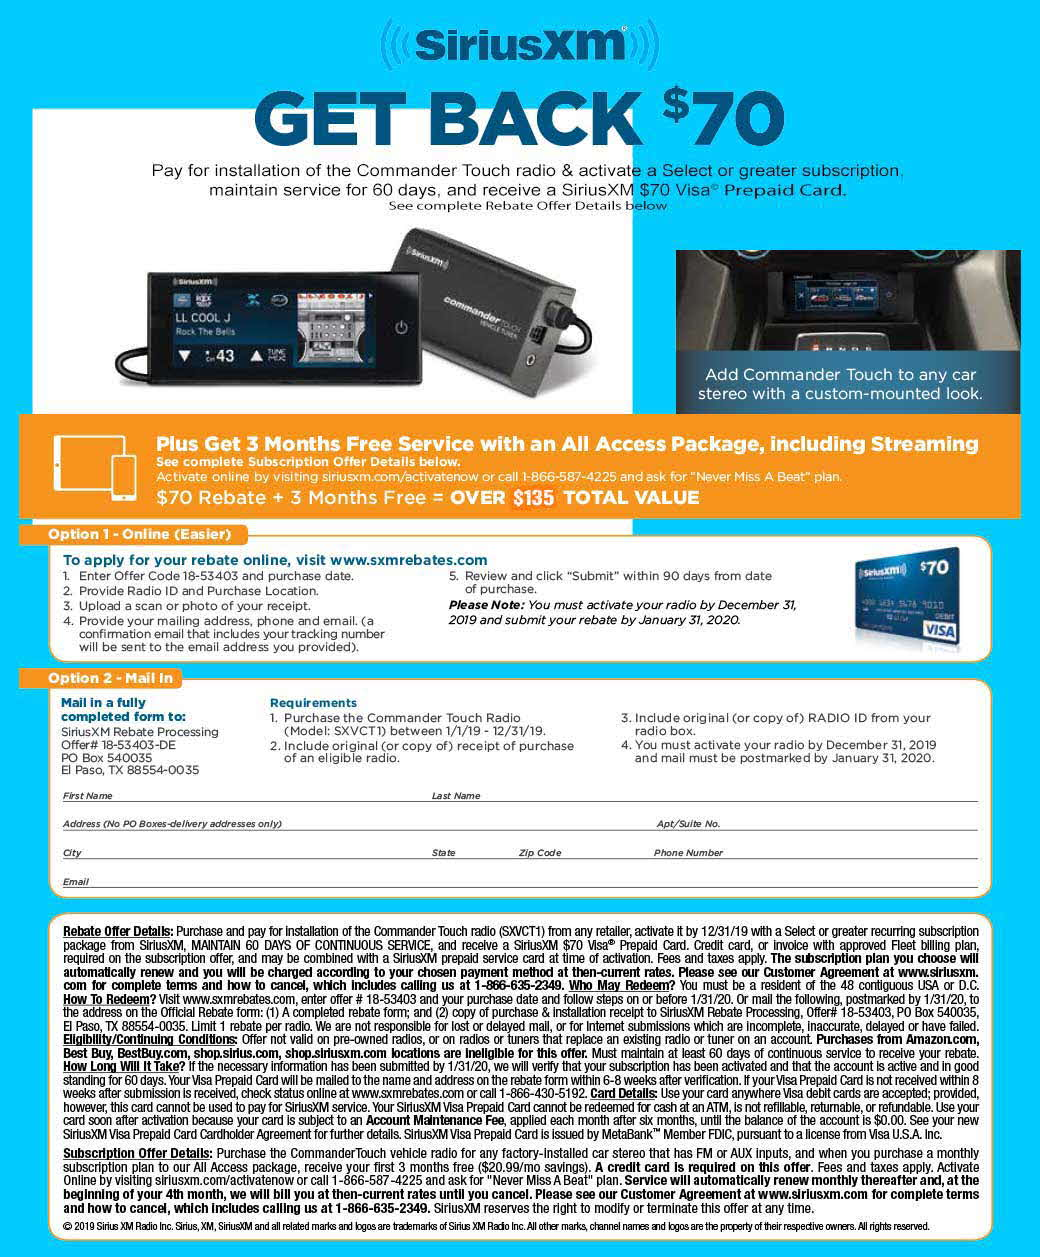 Sirius XM - get back $70 offer